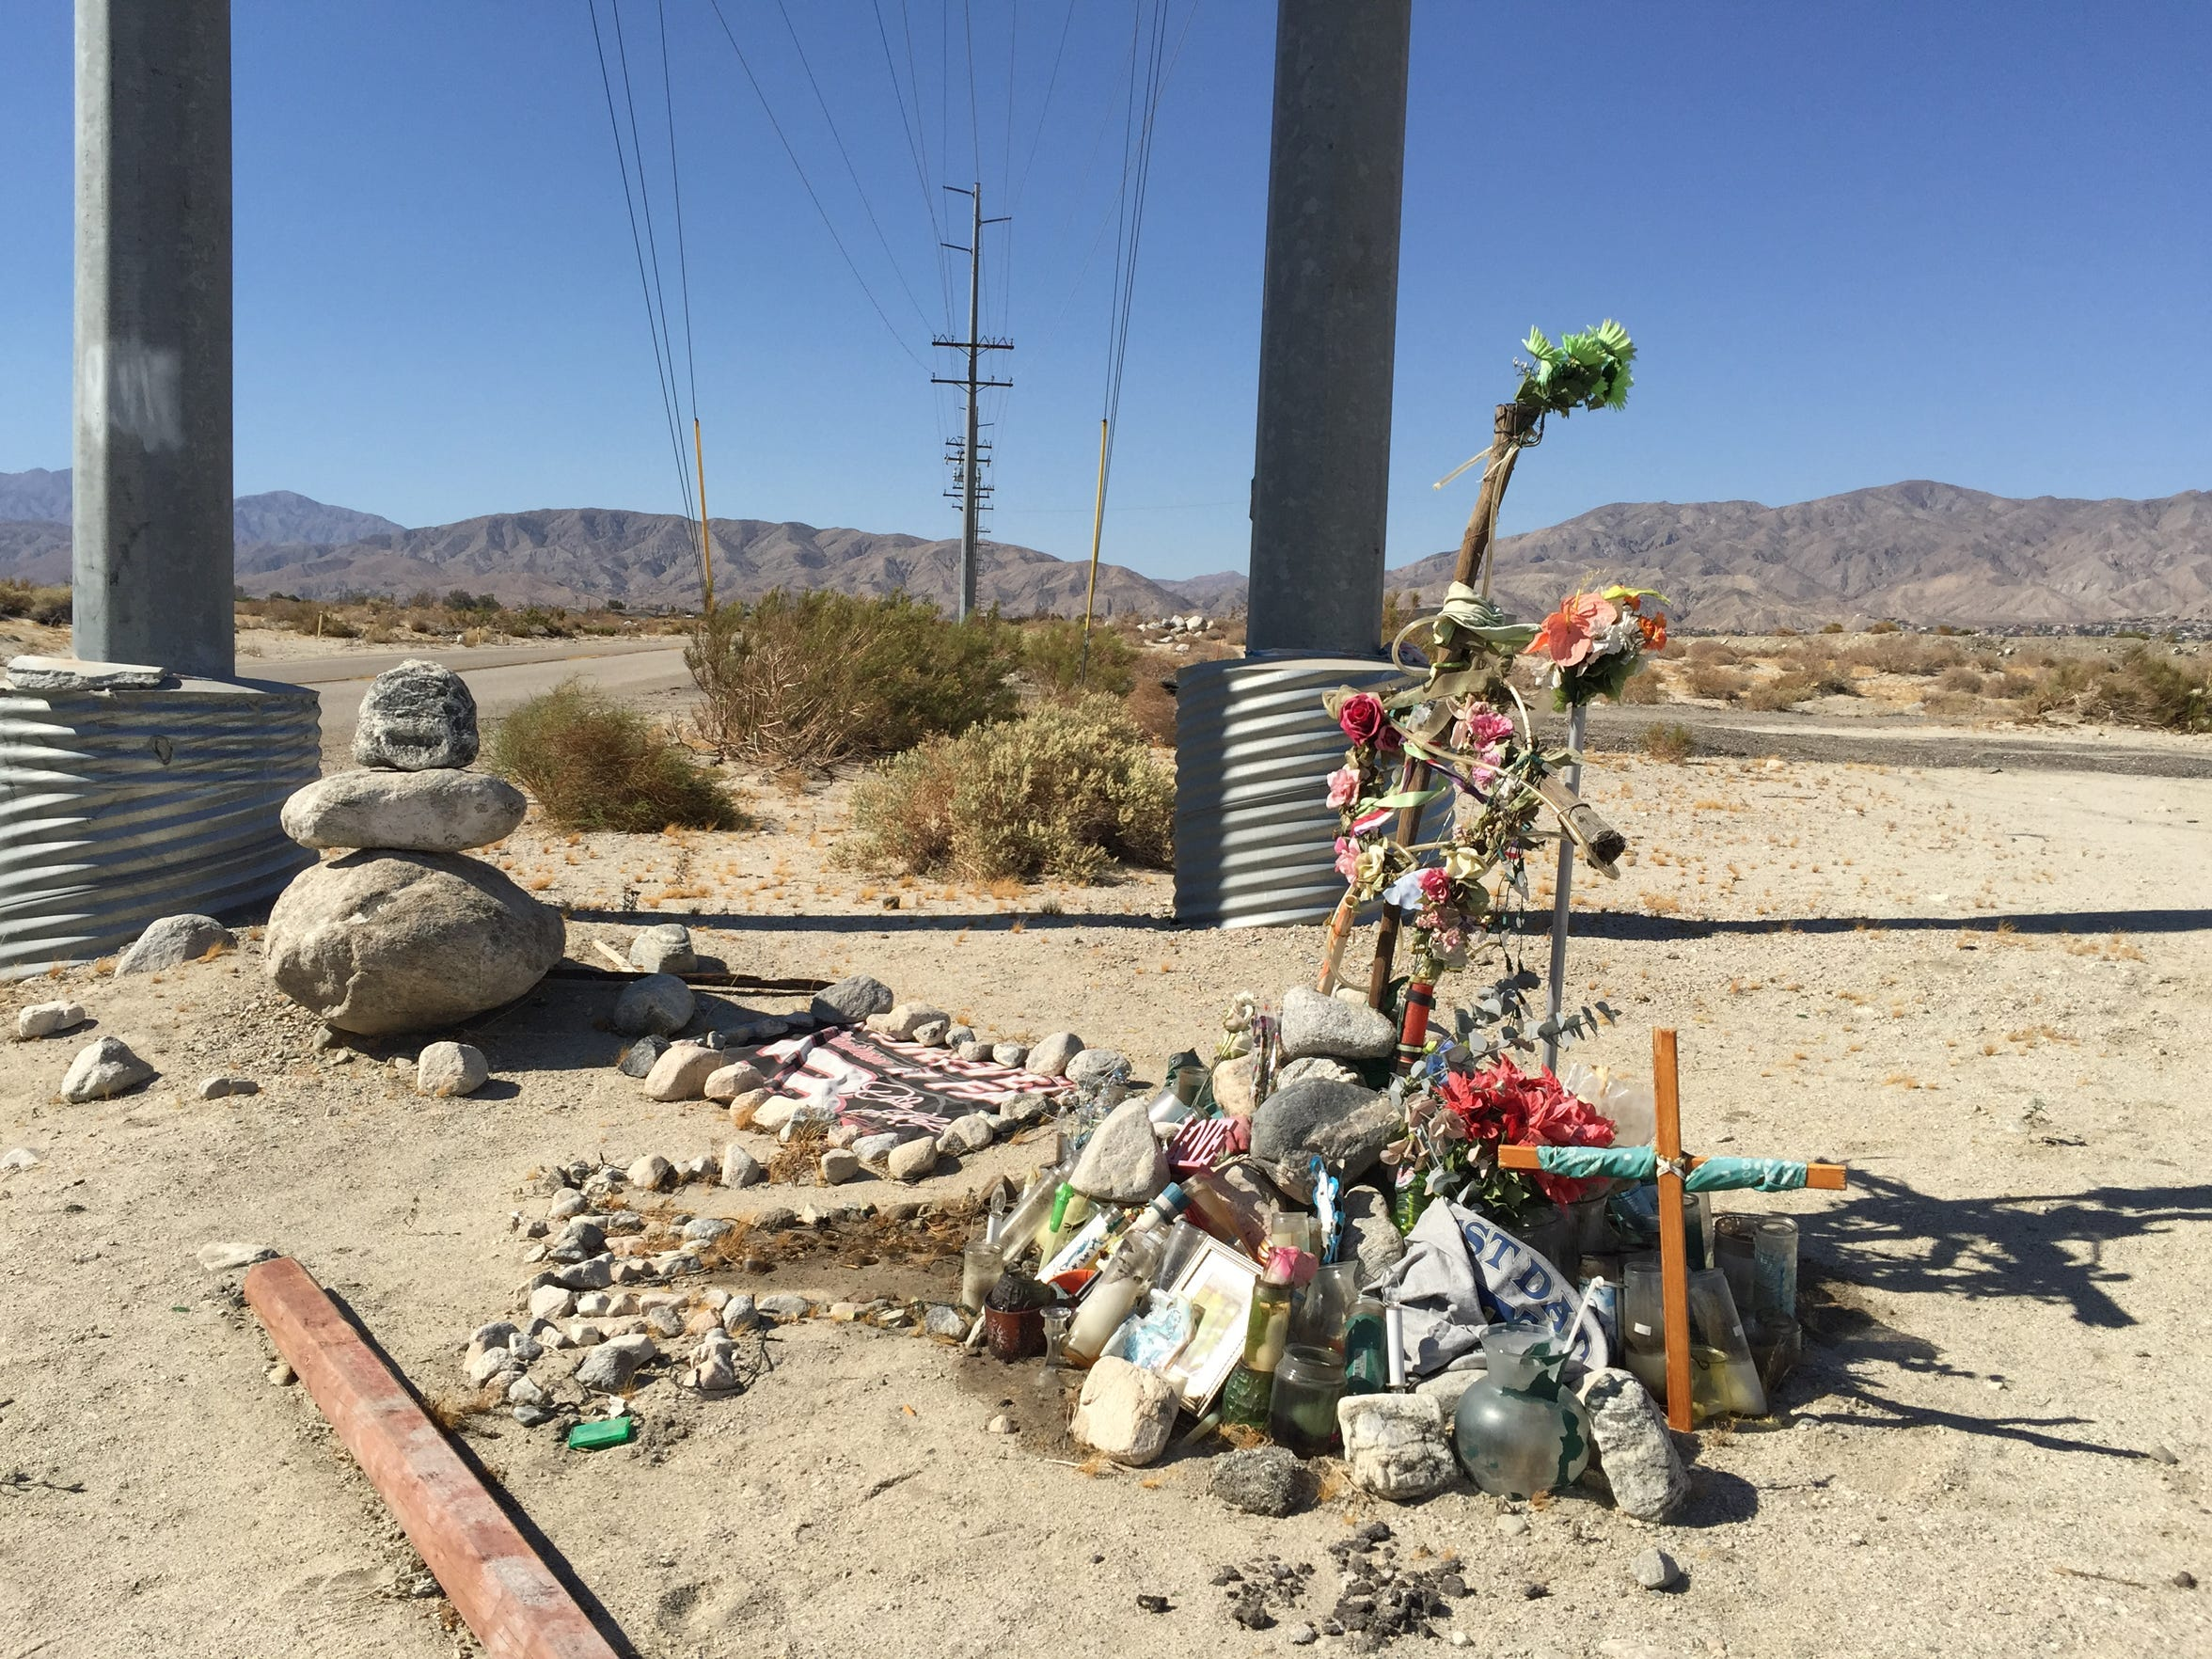 A memorial at the crash site on Little Morongo Road where Tyrone Love Jr. died.